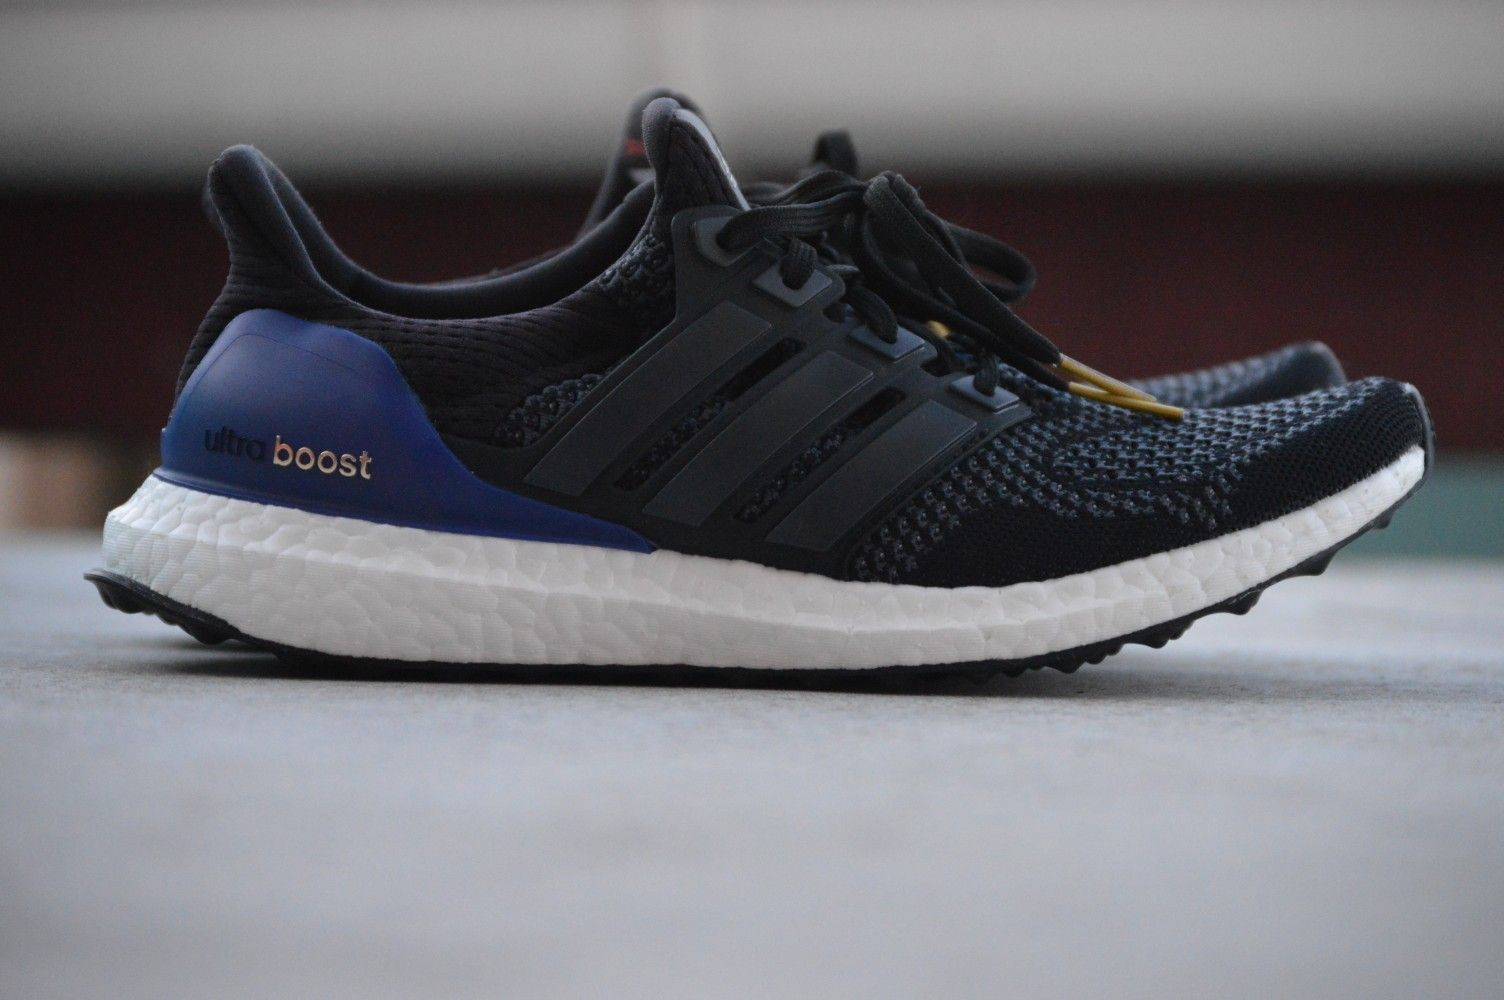 new arrival 37849 1e12b Adidas Ultra boost Og 1.0 | catalogue | Adidas sneakers ...